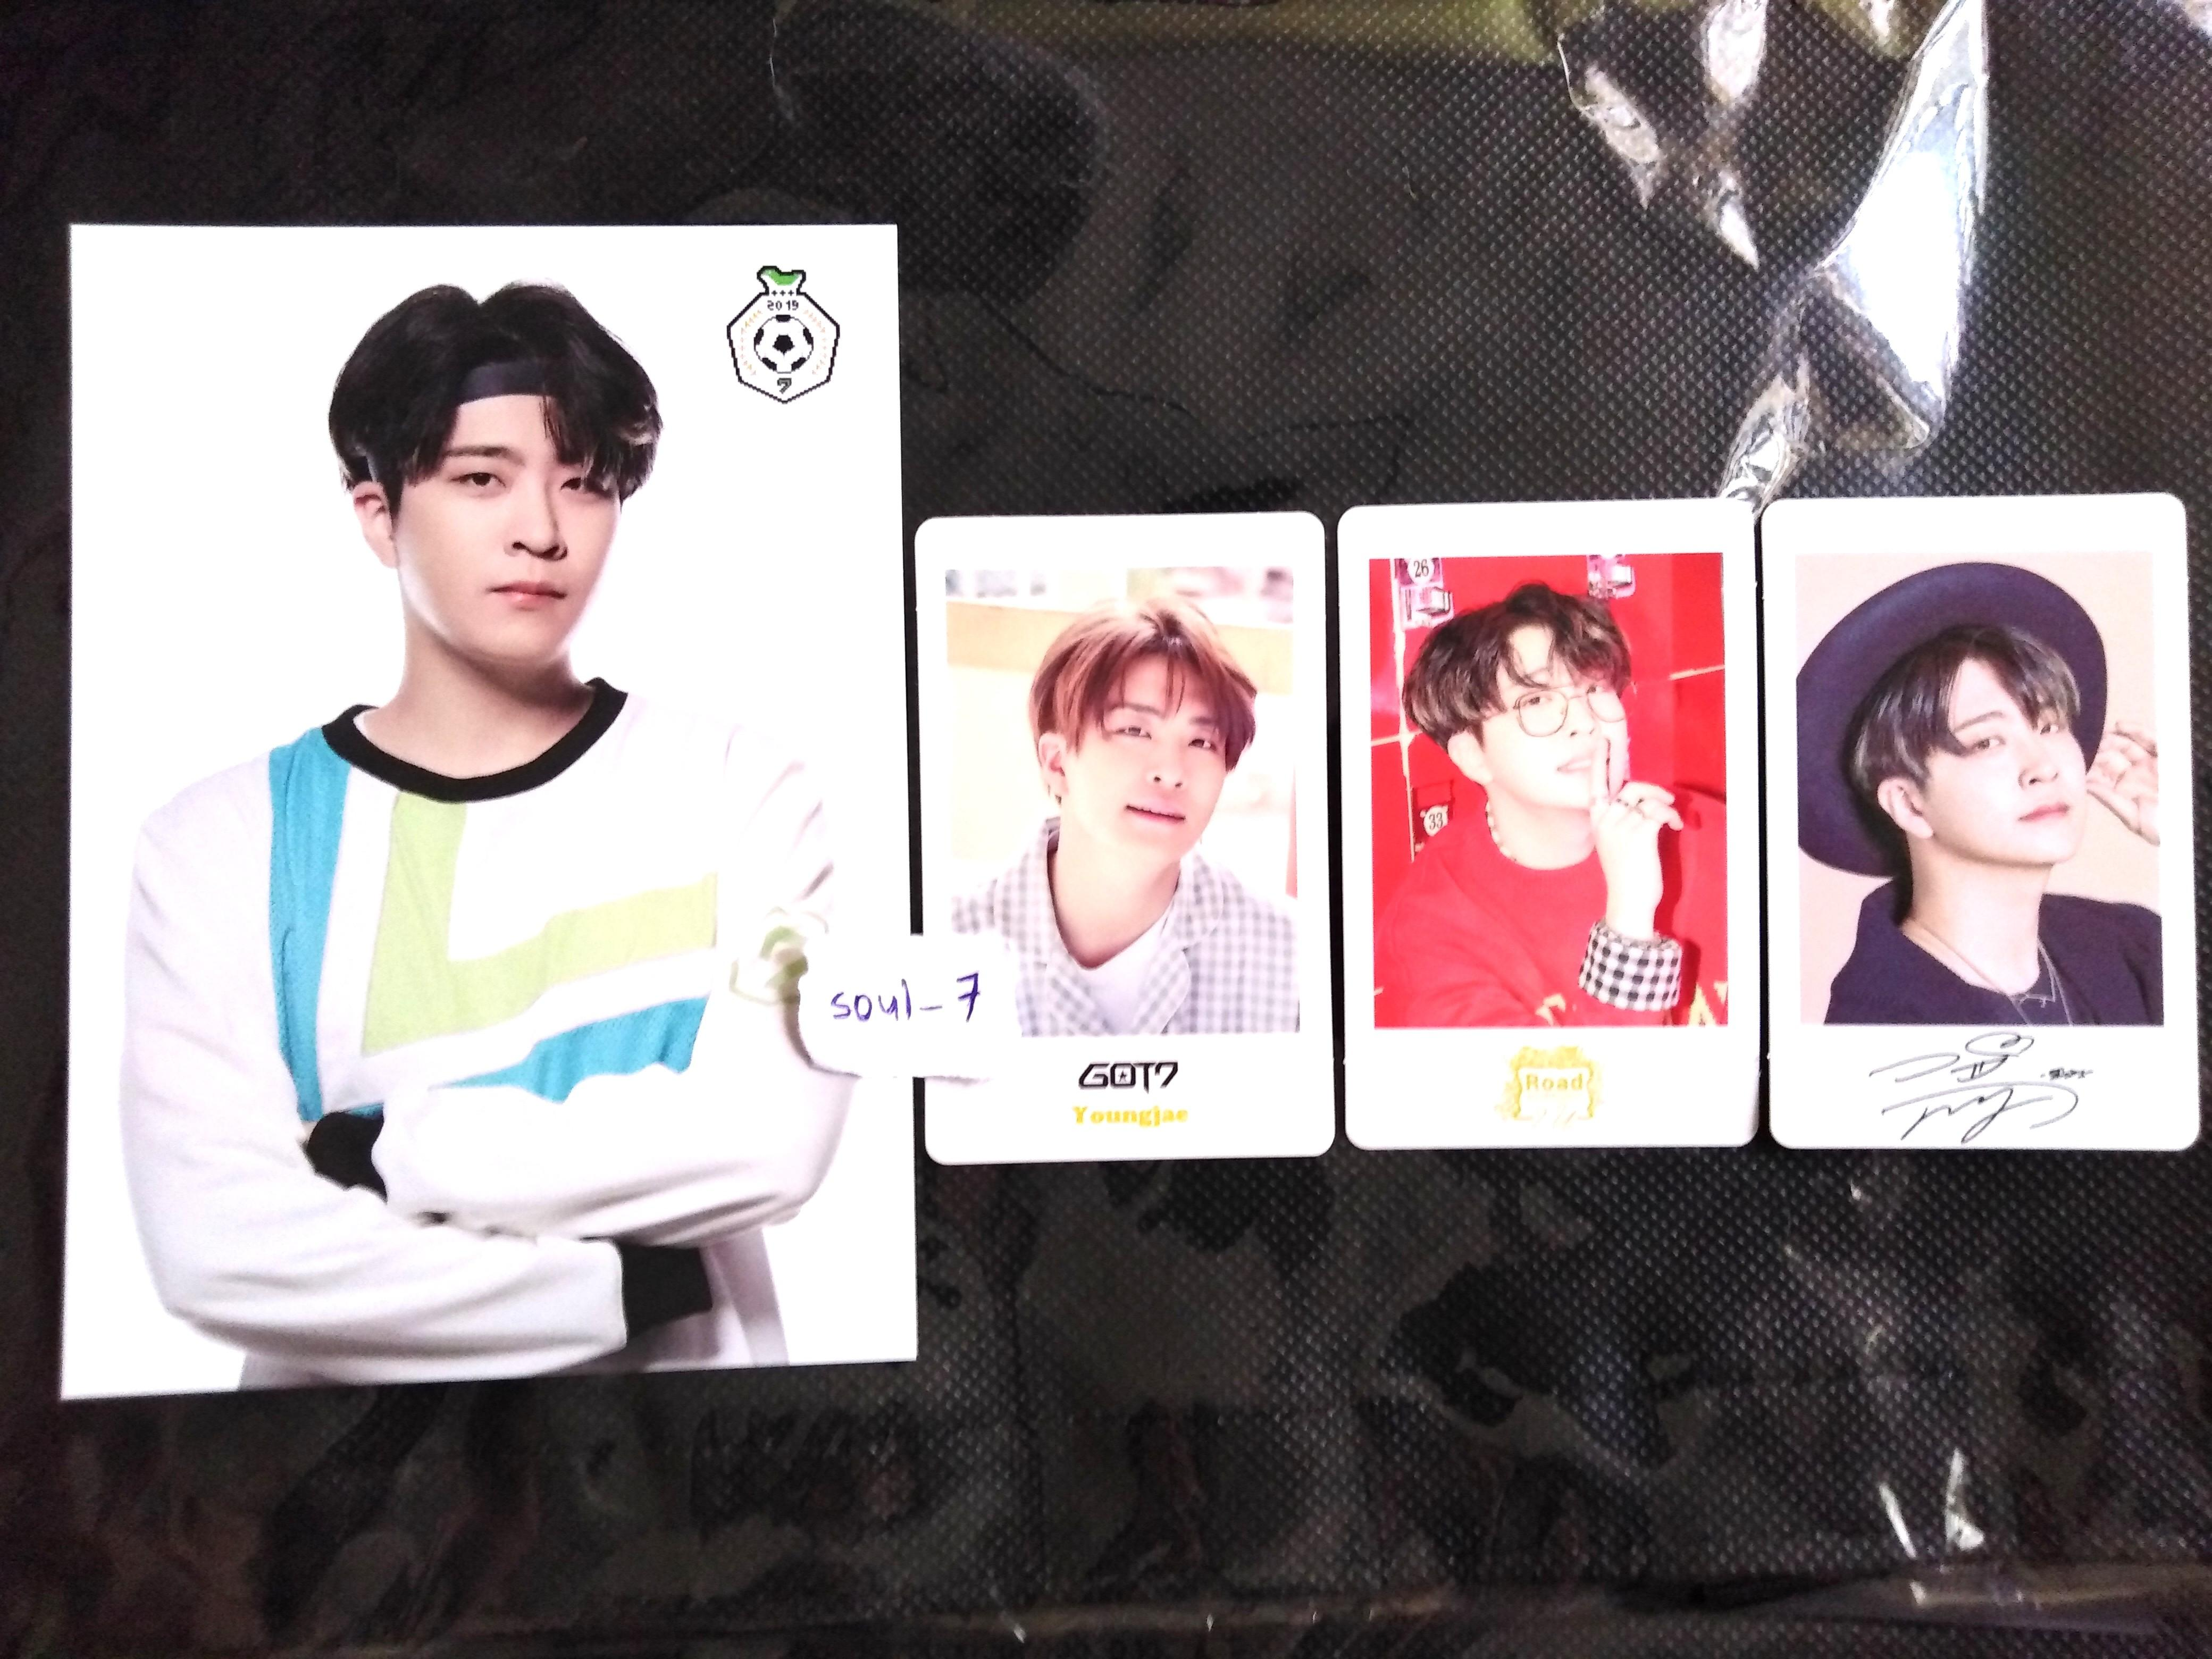 [WTS] GOT7 OFFICIAL POSTCARD & PHOTOCARD SET (MARK YOUNGJAE BAMBAM YUGYEOM)